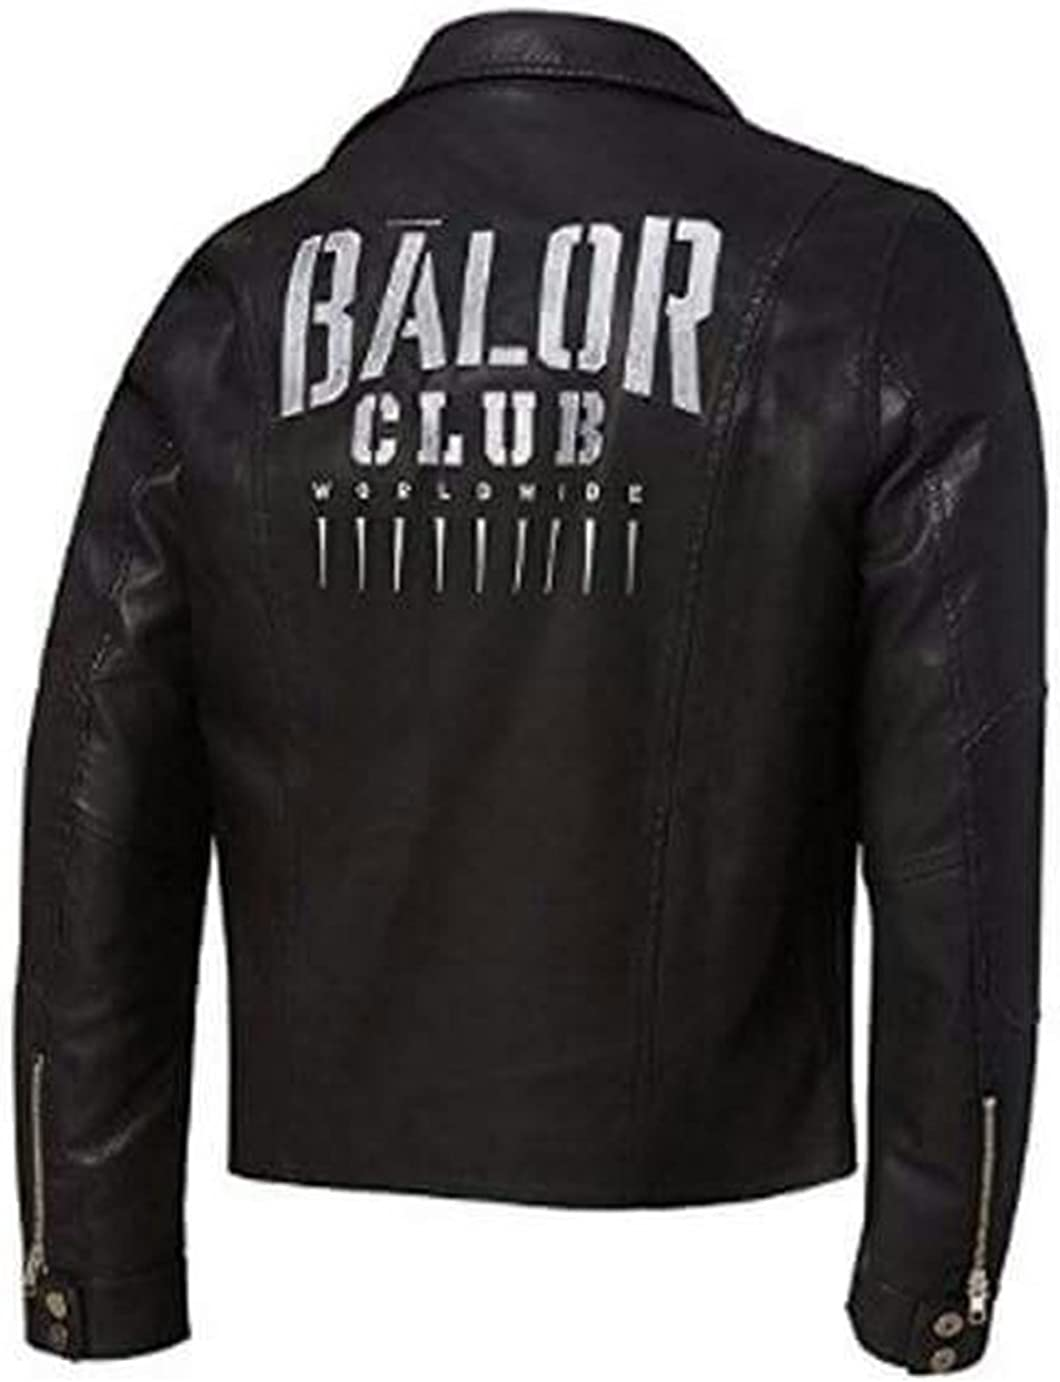 Men's Fin Balor Club Motorcycle Slim Fit Biker Style Black Synthetic Leather Jacket